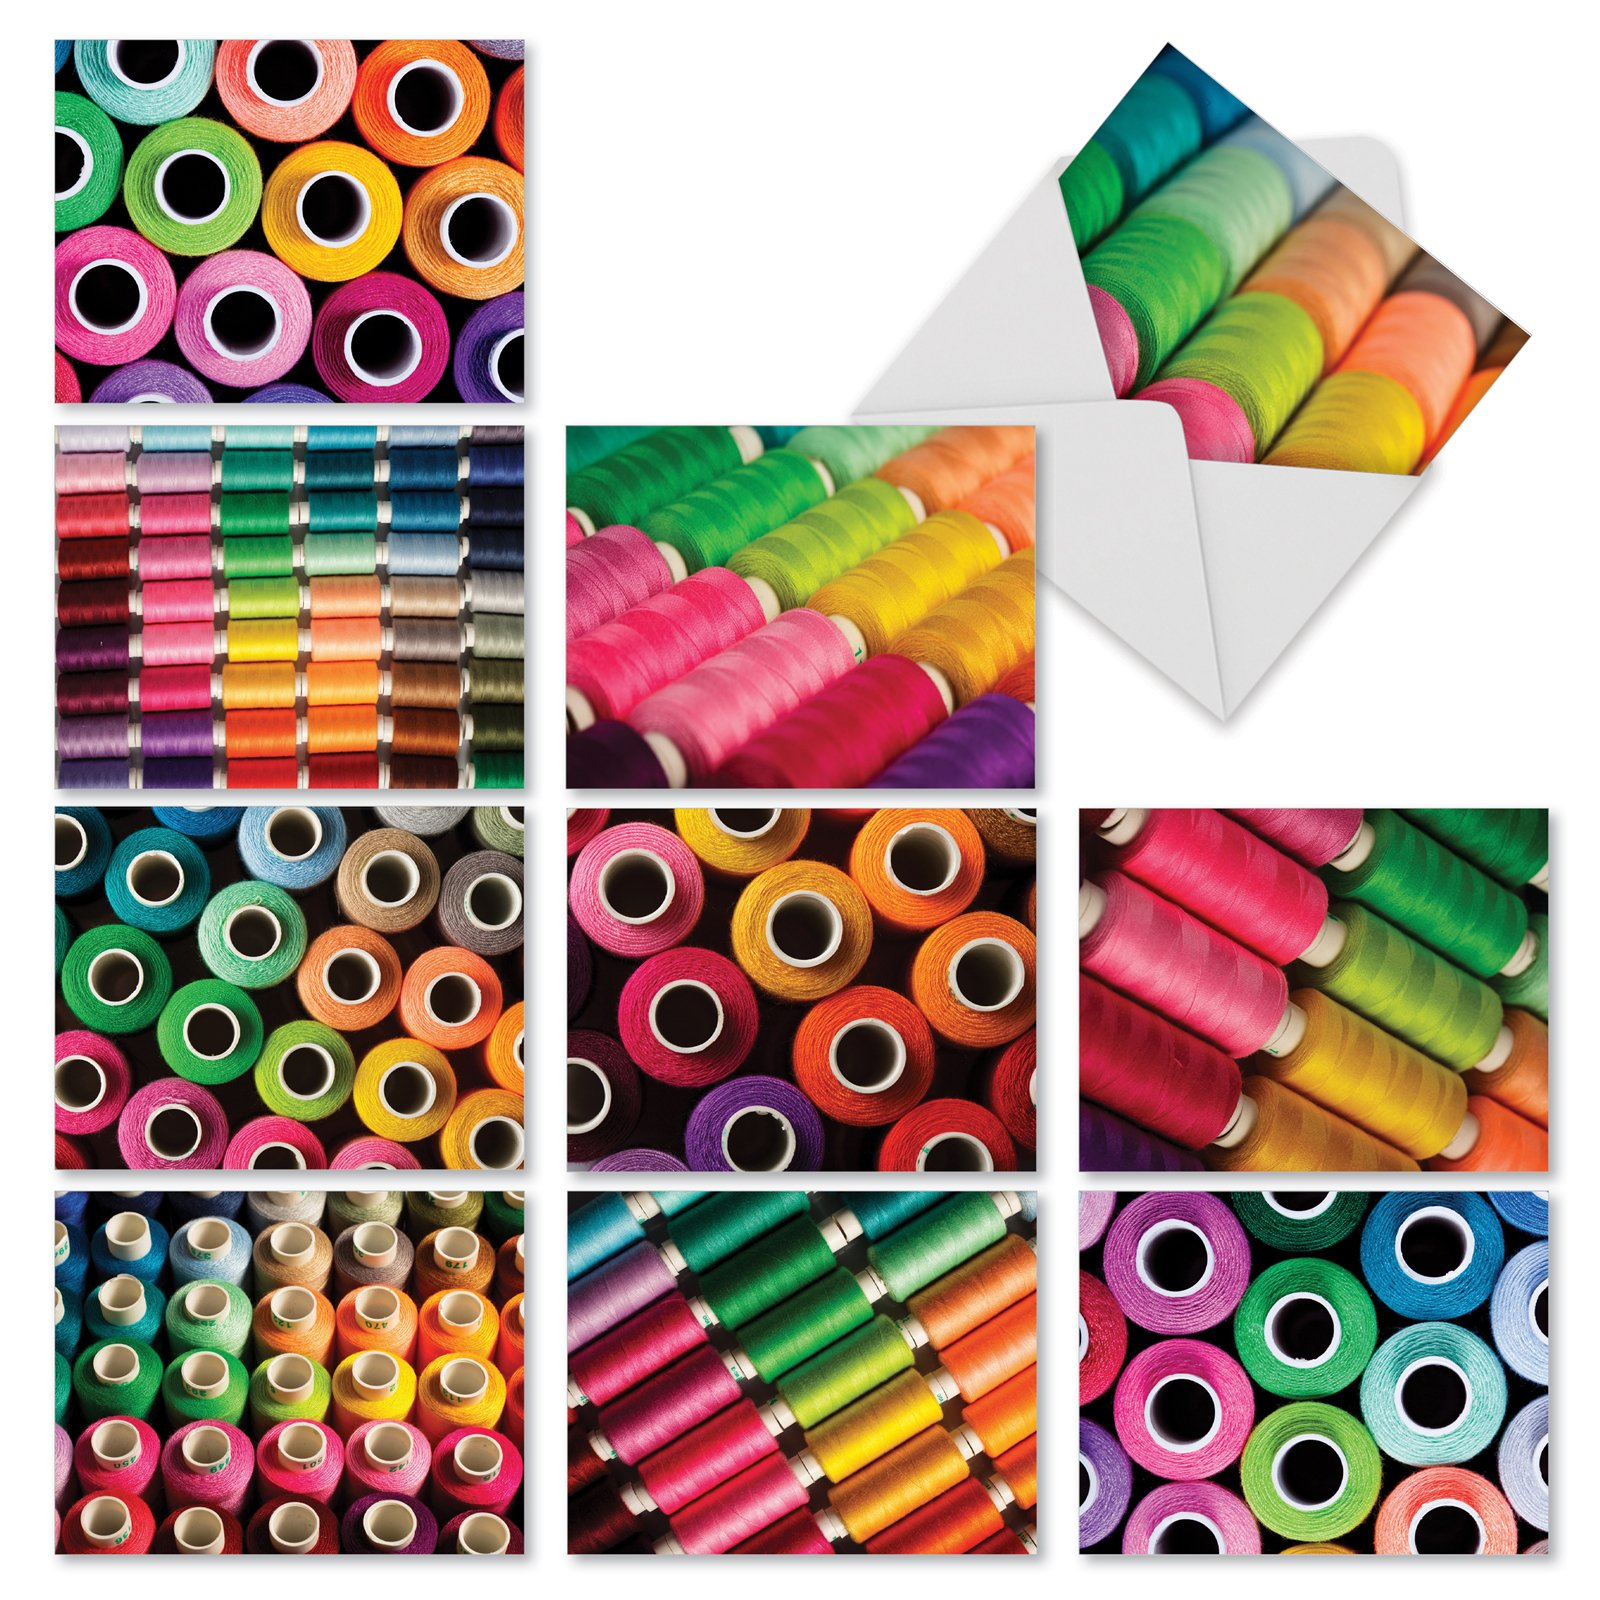 10 Assorted 'Spool Me Once' Greeting Cards Featuring Brightly Colored Thread - All Occasion Note Cards w/Envelopes, Blank Stationery for Baby Showers, Business, Thank You 4 x 5.12 inch M3094